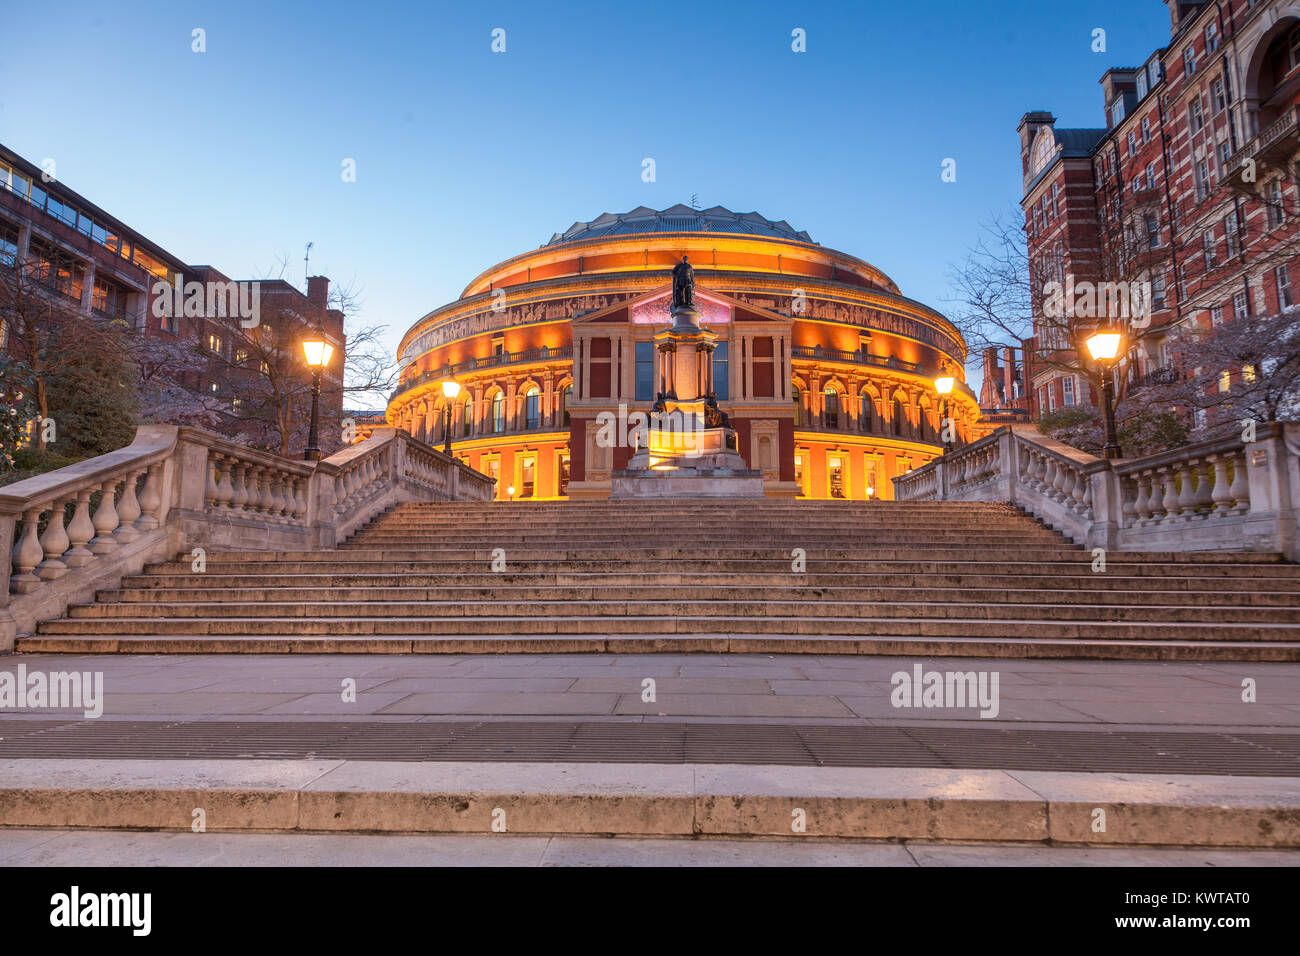 The Royal Albert Hall London, Victorian time architecture square - Stock Image